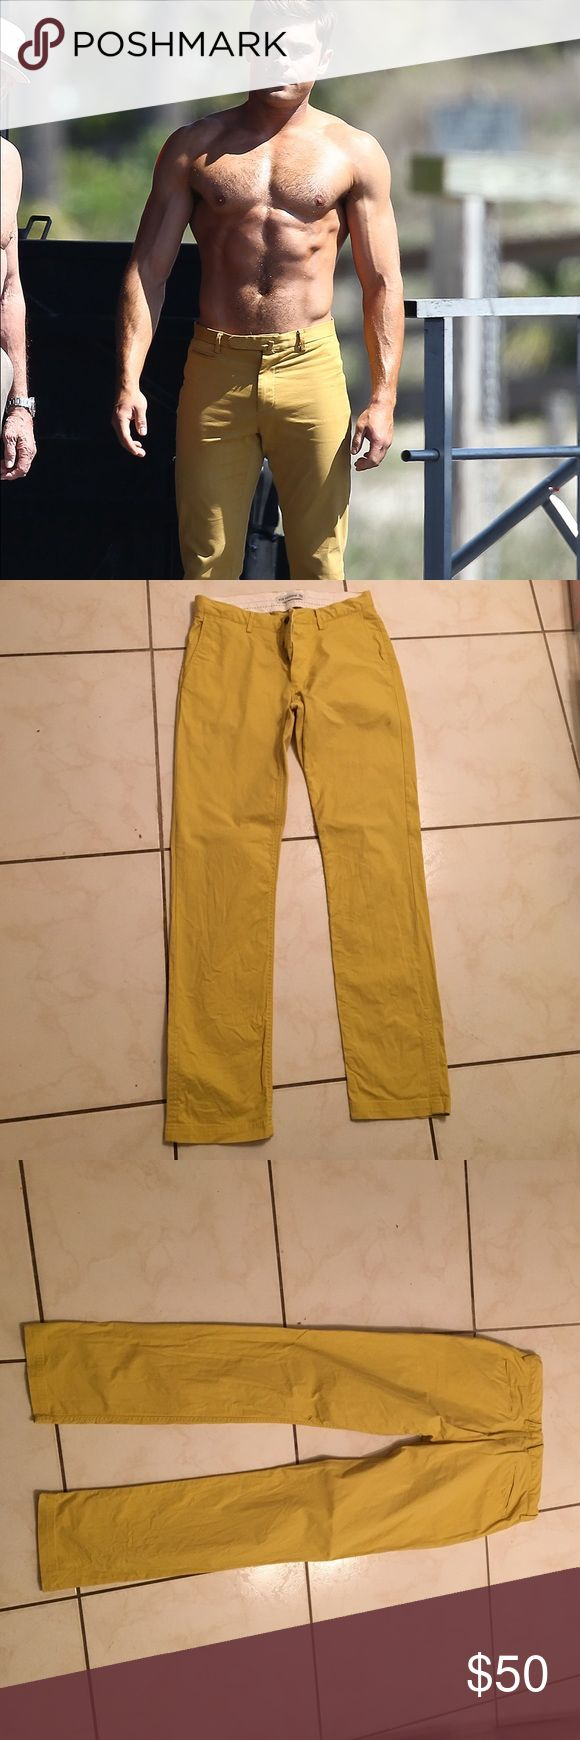 Ben Sherman yellow chinos Yellow chinos - similar to the ones worn by Zac Efron in 'Bad Grandpa' Ben Sherman Pants Chinos & Khakis